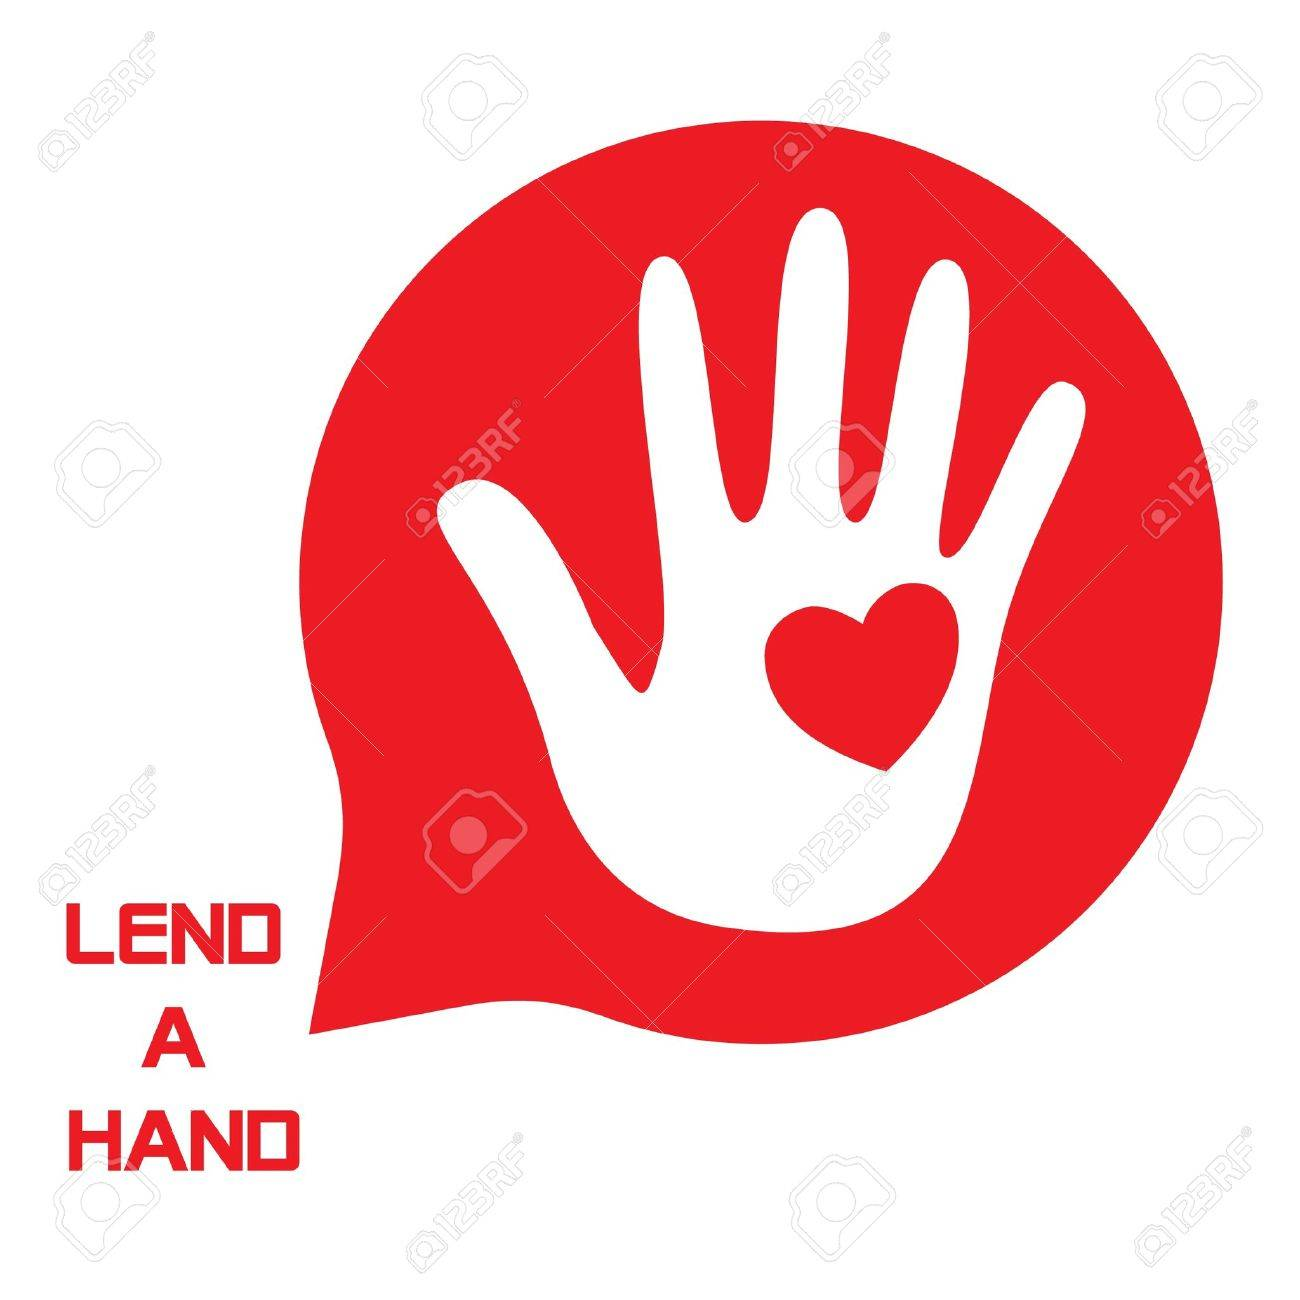 Lend a Hand Logo for Tsunami Relief Efforts Charity Drive 2011, Japan Stock Vector - 9085258